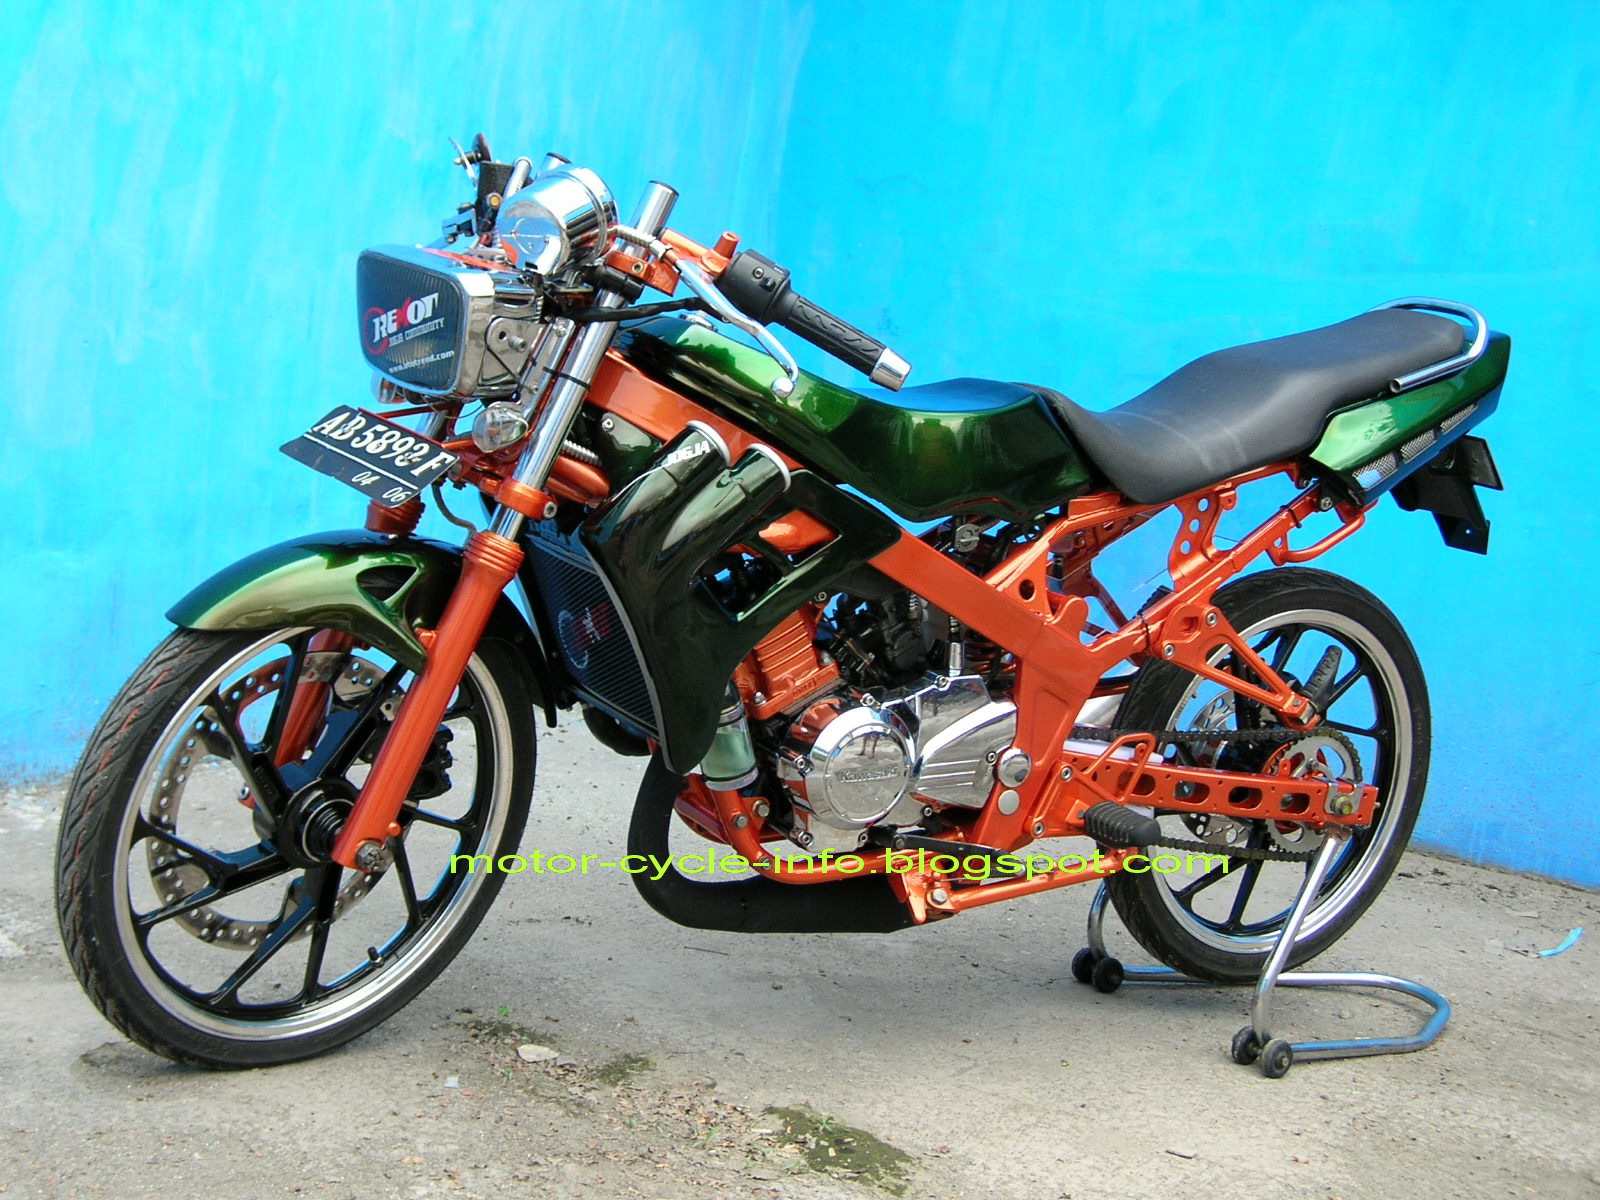 tag :airbrush, concept, design, Kawasaki, motor treatment, motor cycle